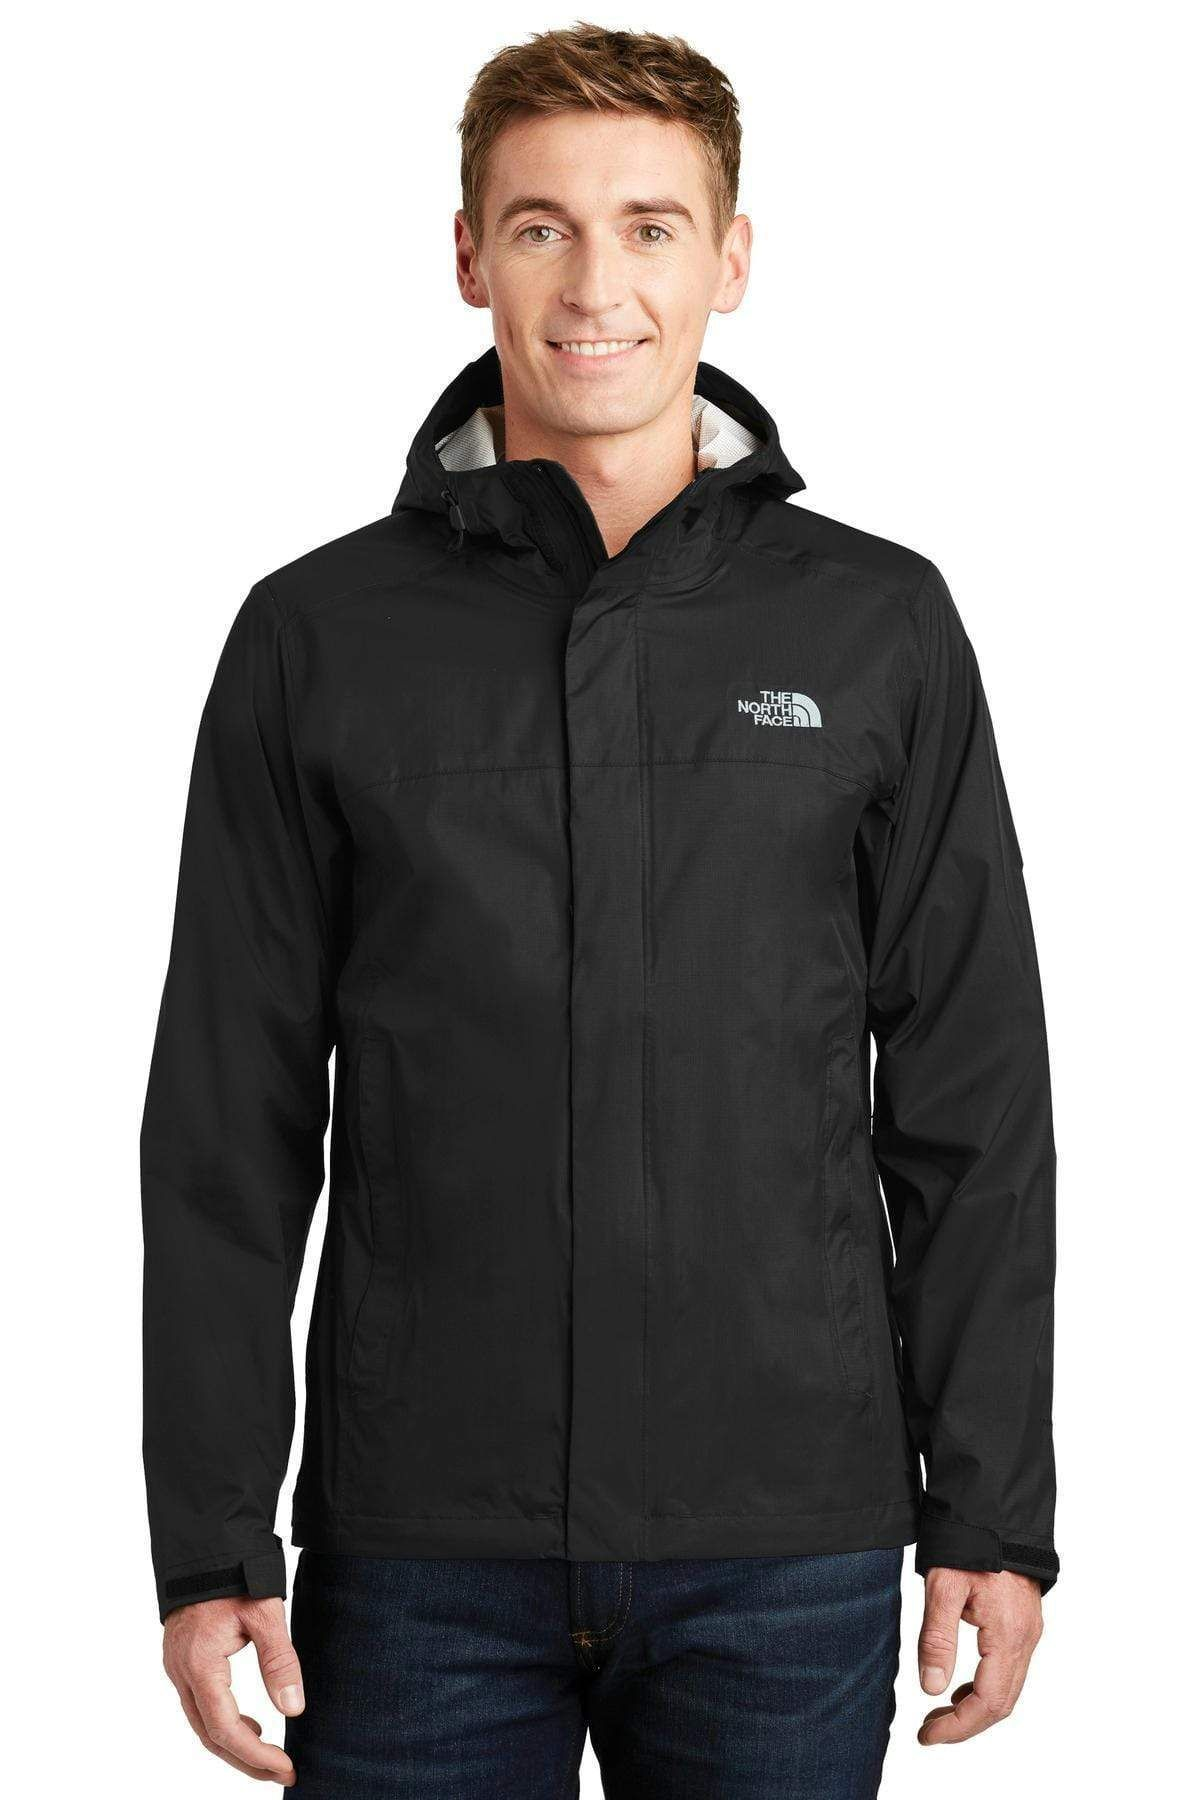 The North Face Dry Entrain Jacket Nf0a3lh4 In 2021 Breathable Jacket Rain Jacket Waterproof Breathable Jacket [ 1800 x 1200 Pixel ]